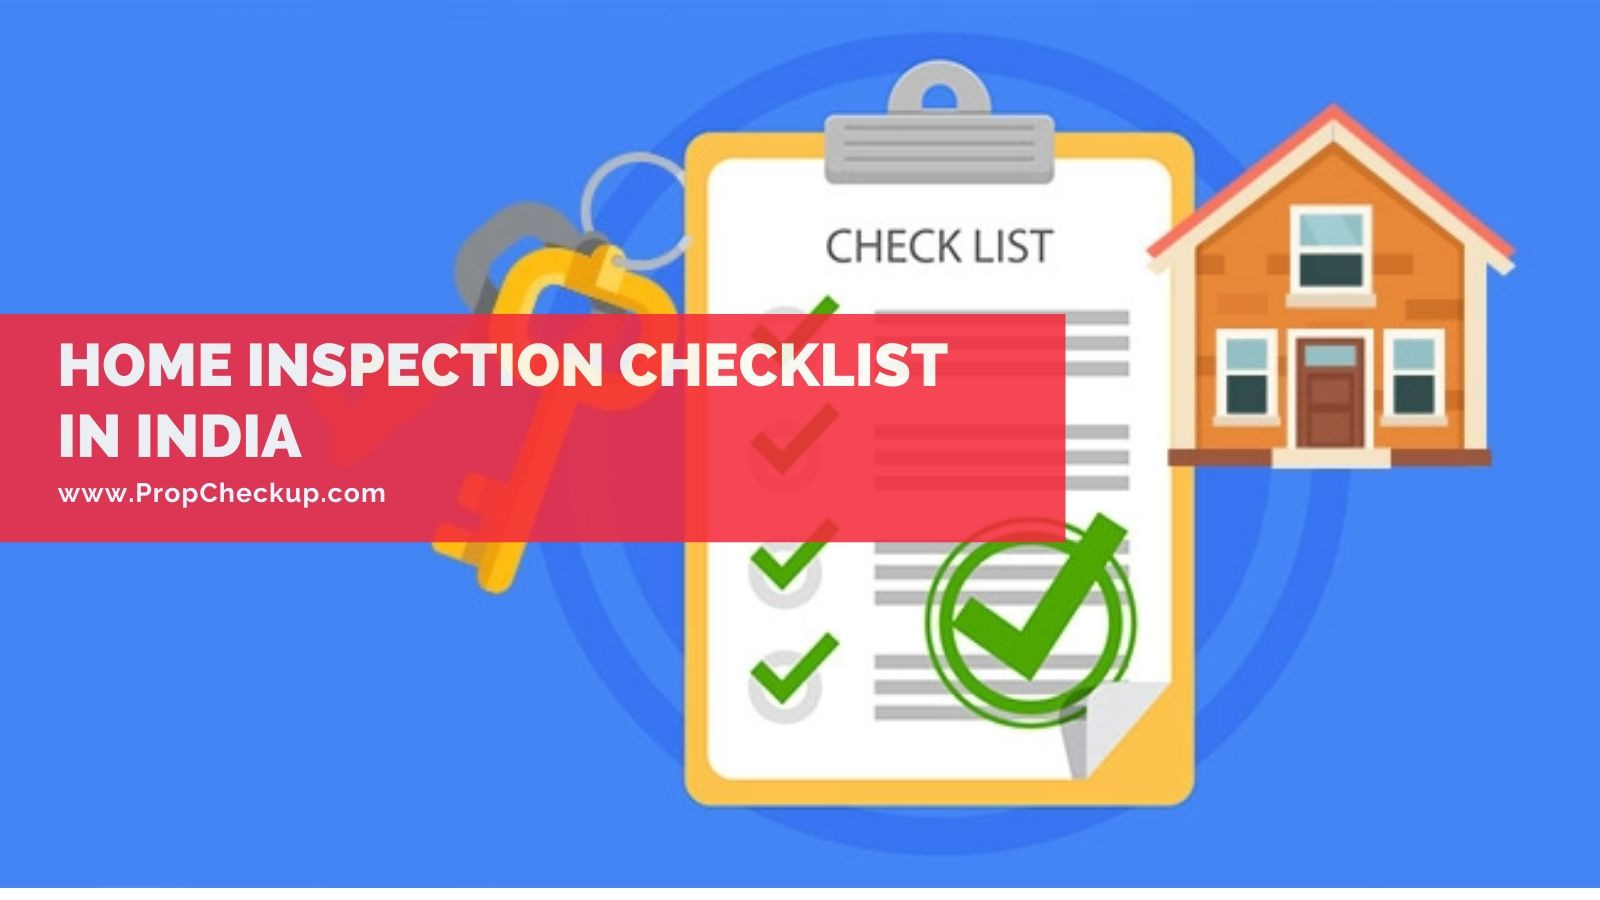 Home Inspection Checklist In India